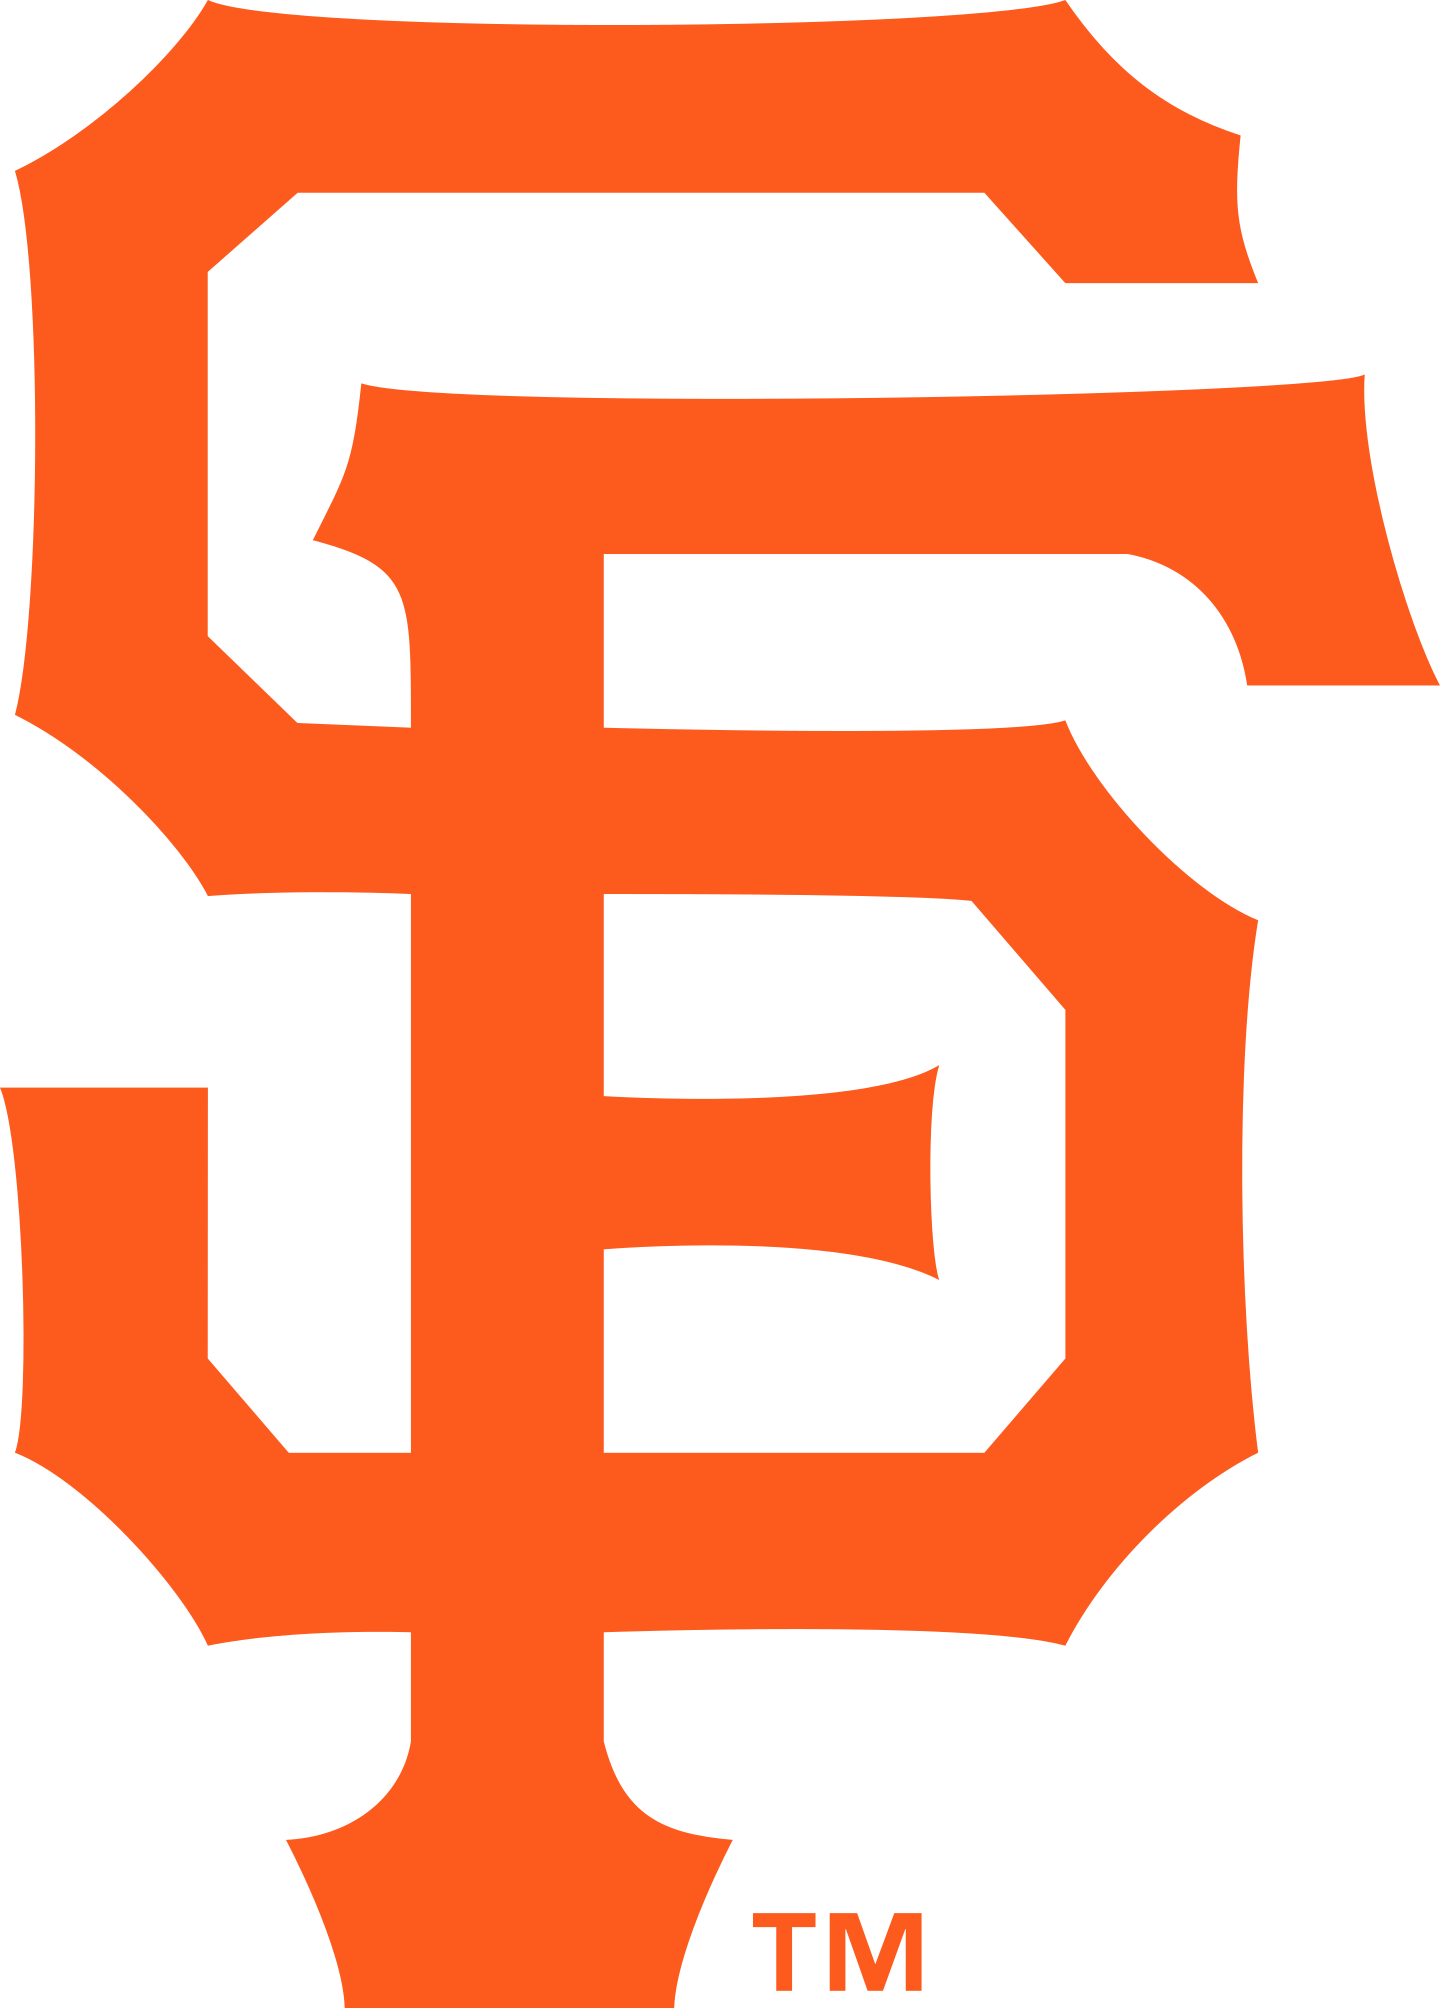 san francisco giants logo 2 - San Francisco Giants Logo